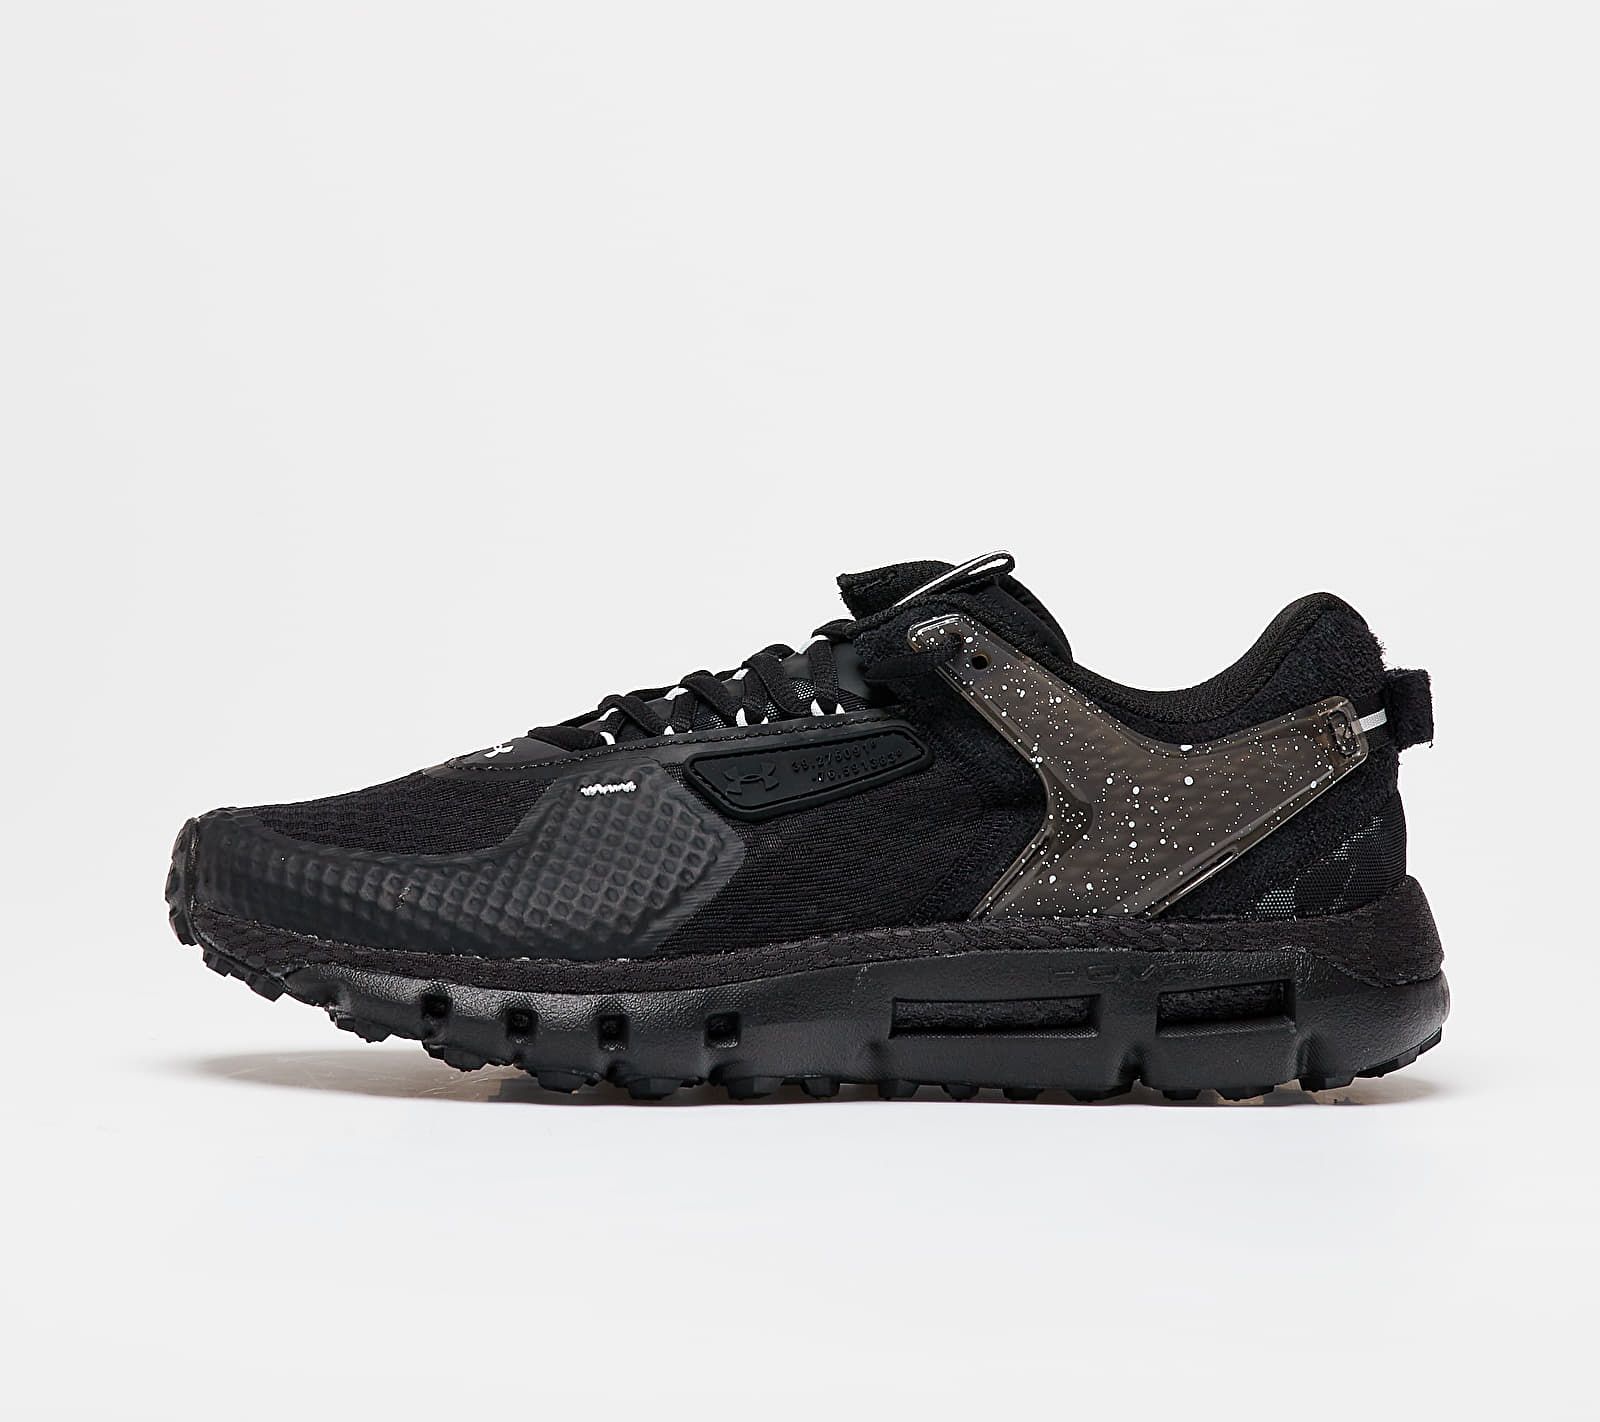 Under Armour HOVR Summit URBN TXT Black 1